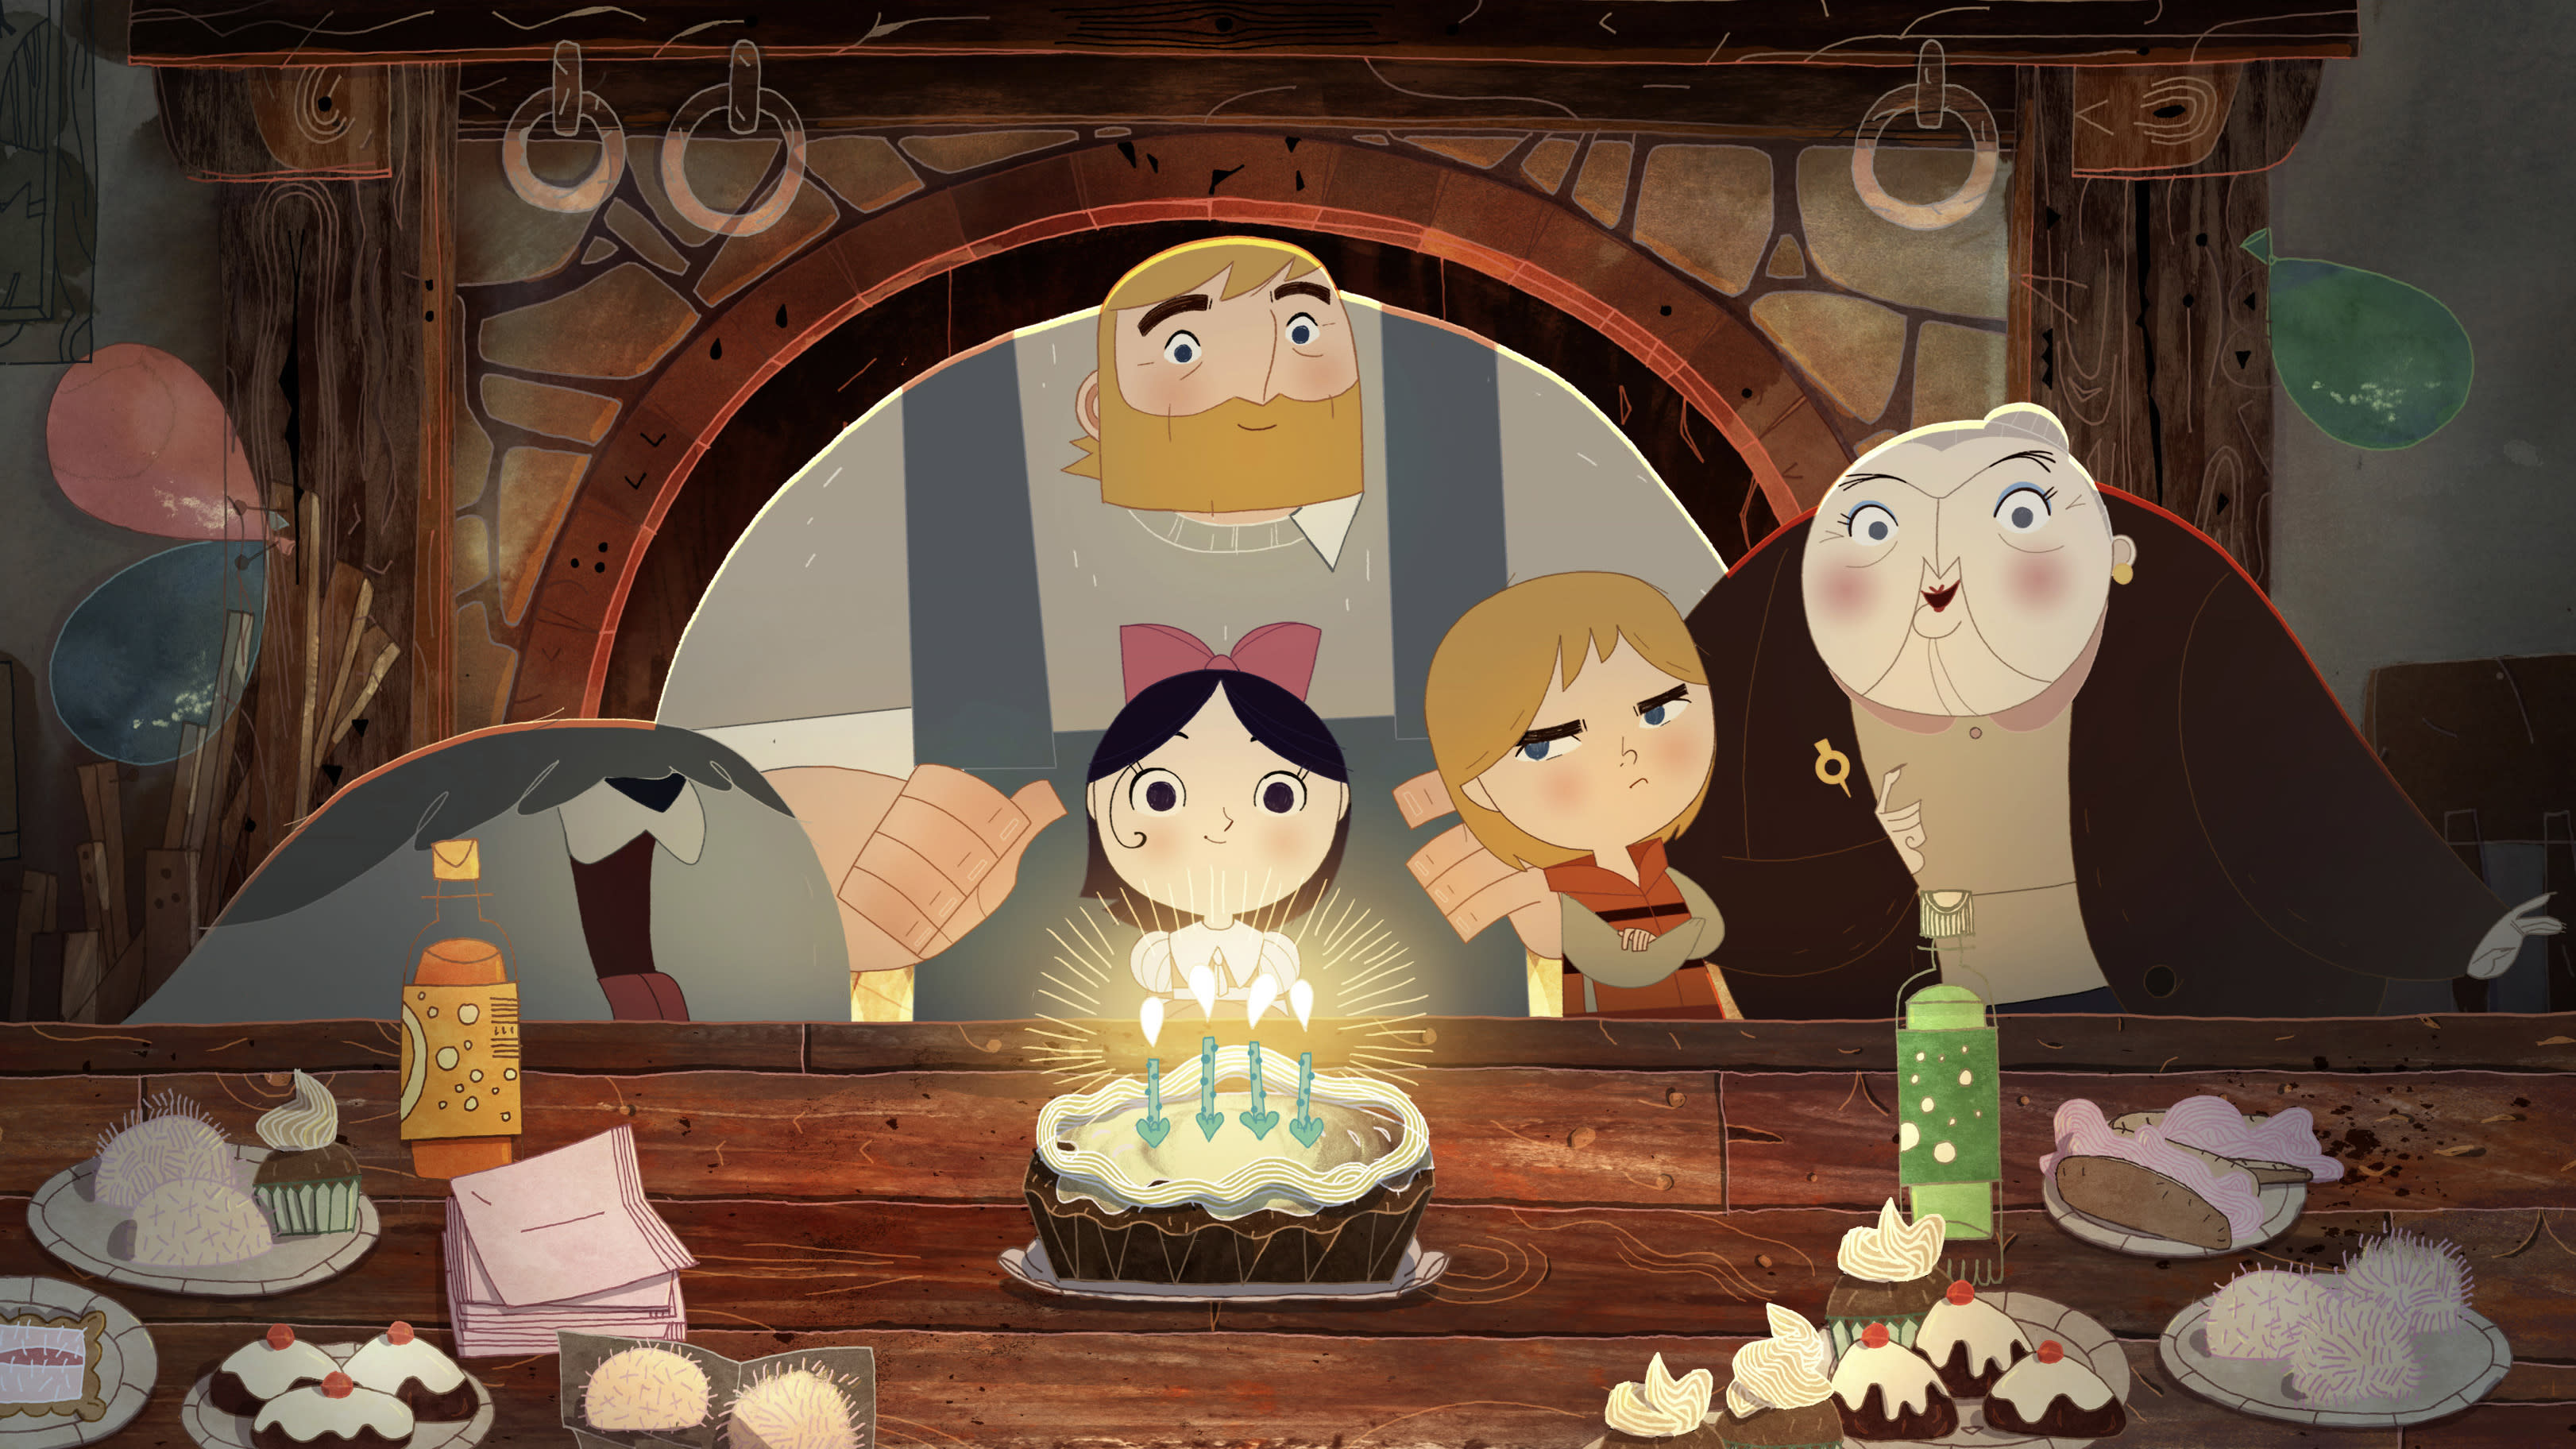 Animated Film 'Song of the Sea' Wins Top Prize at Irish Film and Television Awards